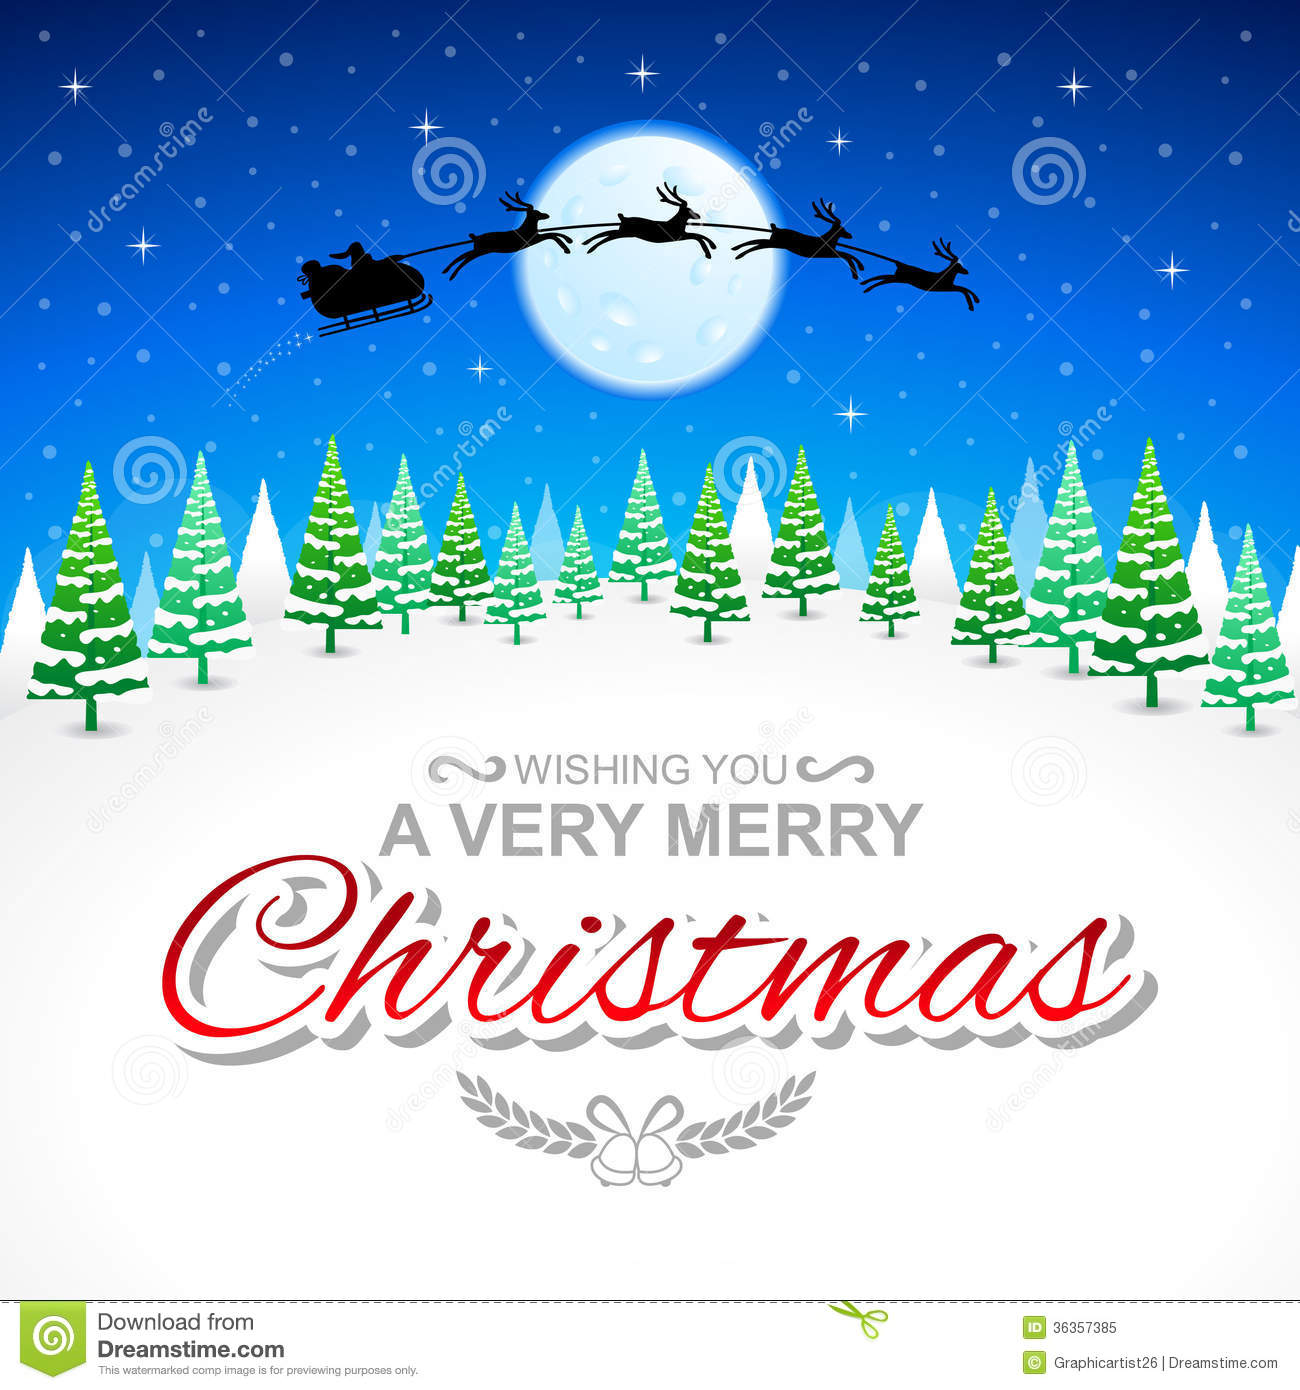 Very Merry Christmas.Wishing You A Very Merry Christmas Stock Illustration